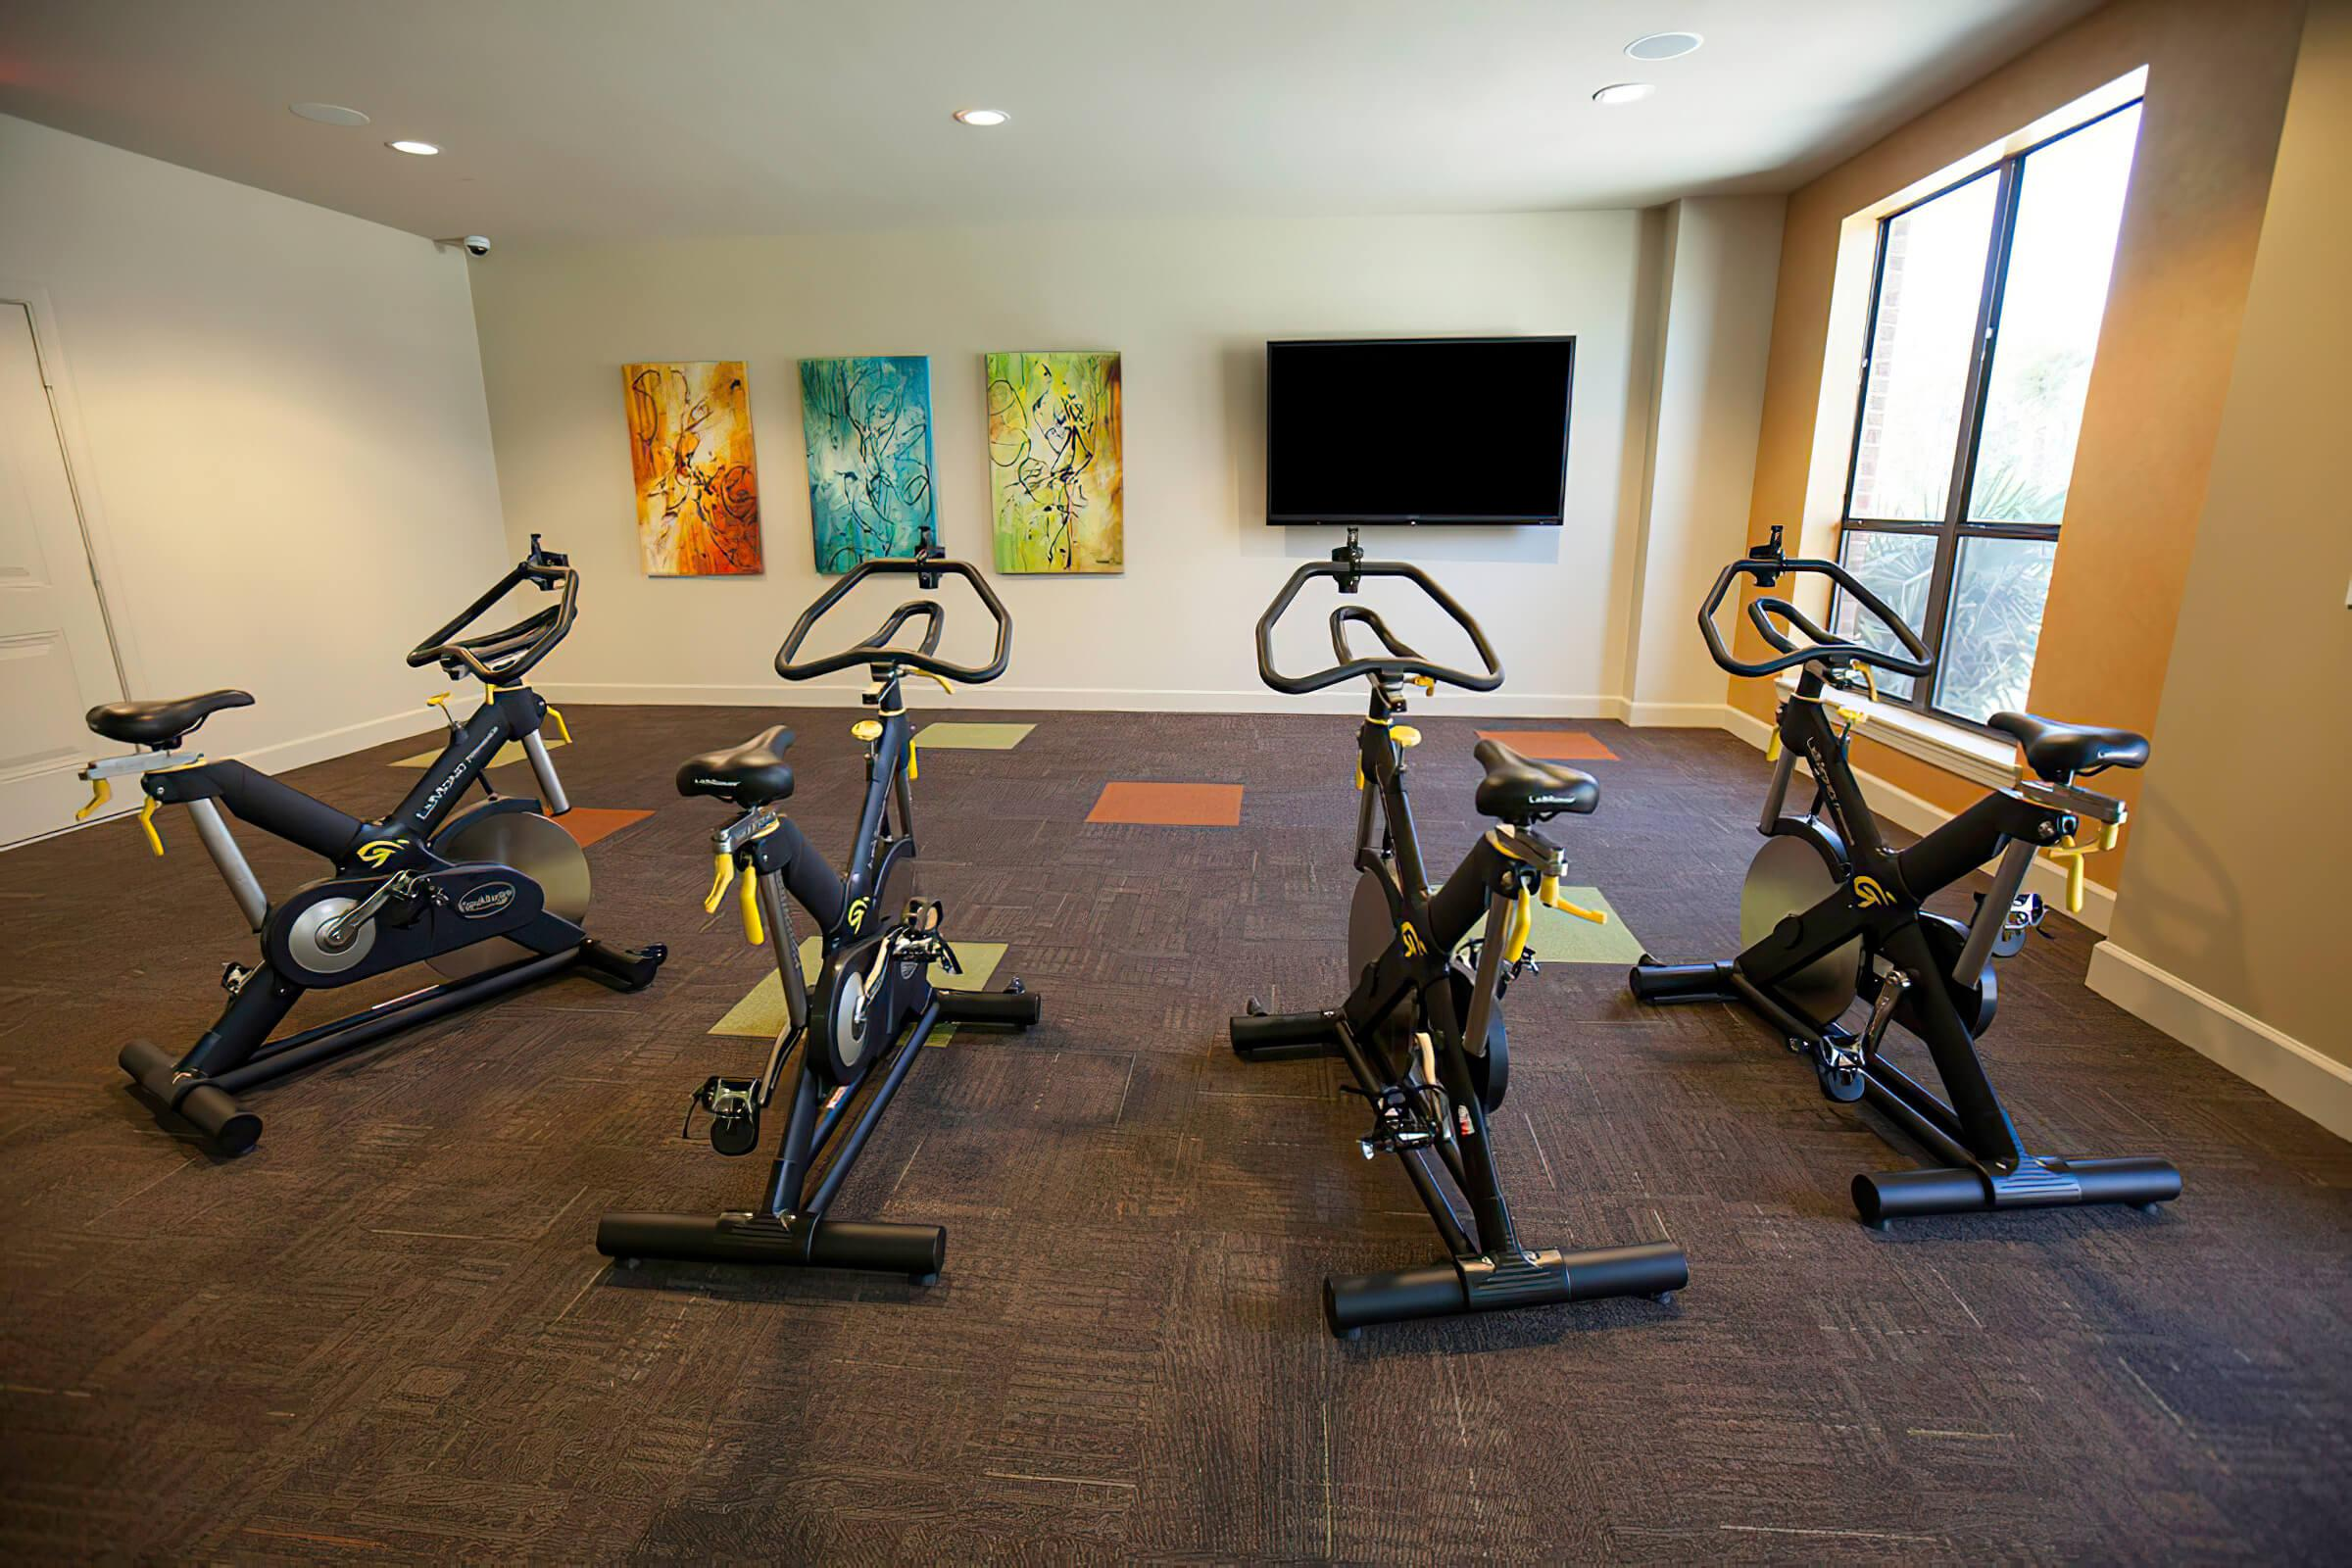 San Antigua Day 3 Fitness Center Angle 5 Spin station-width-2400px.jpg